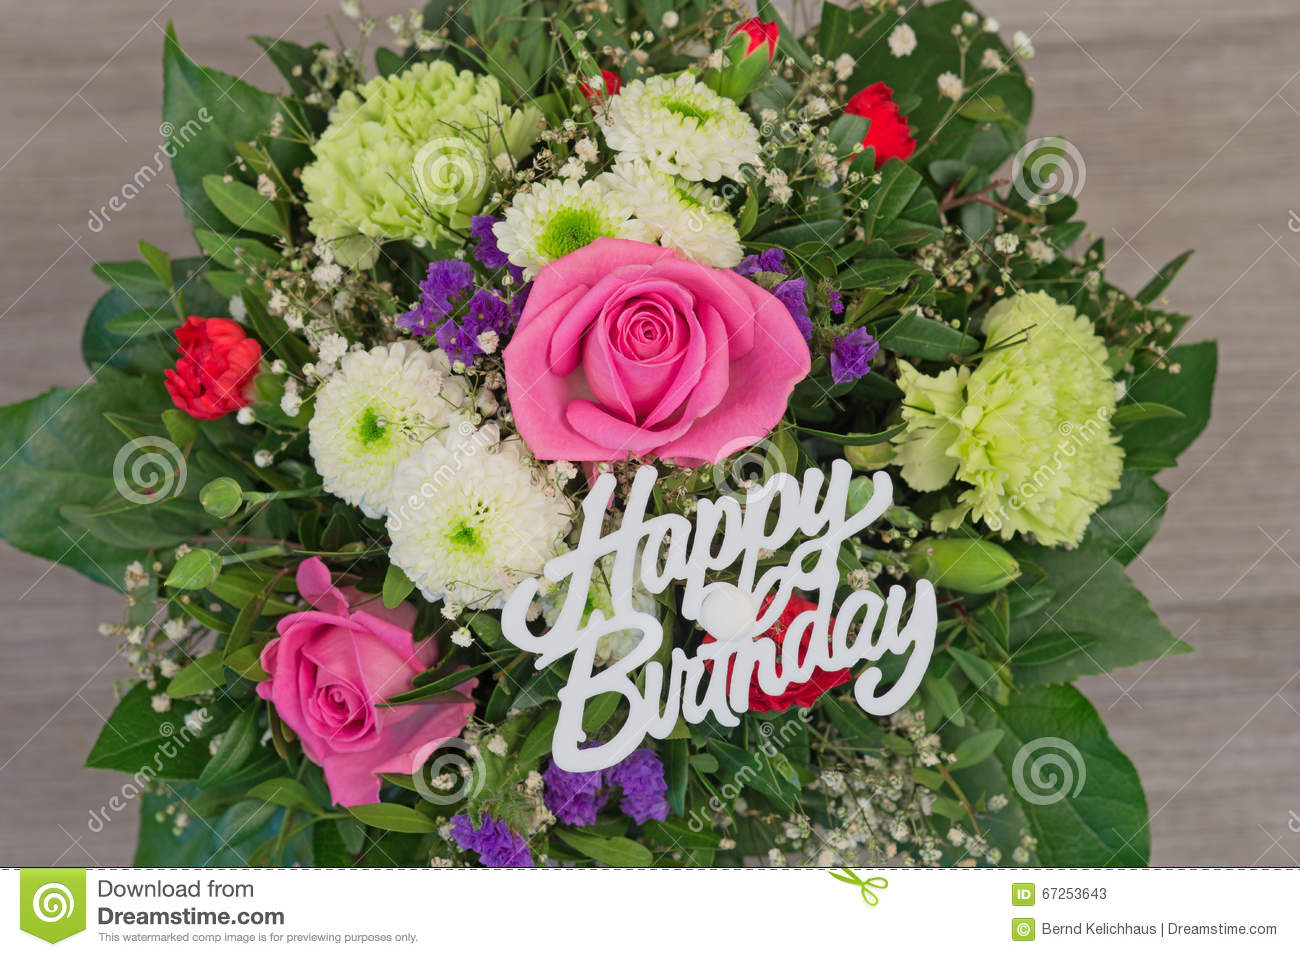 Flower bouquet with text happy birthday stock image image of bunch of colorful flowers flower bouquet with text happy birthday izmirmasajfo